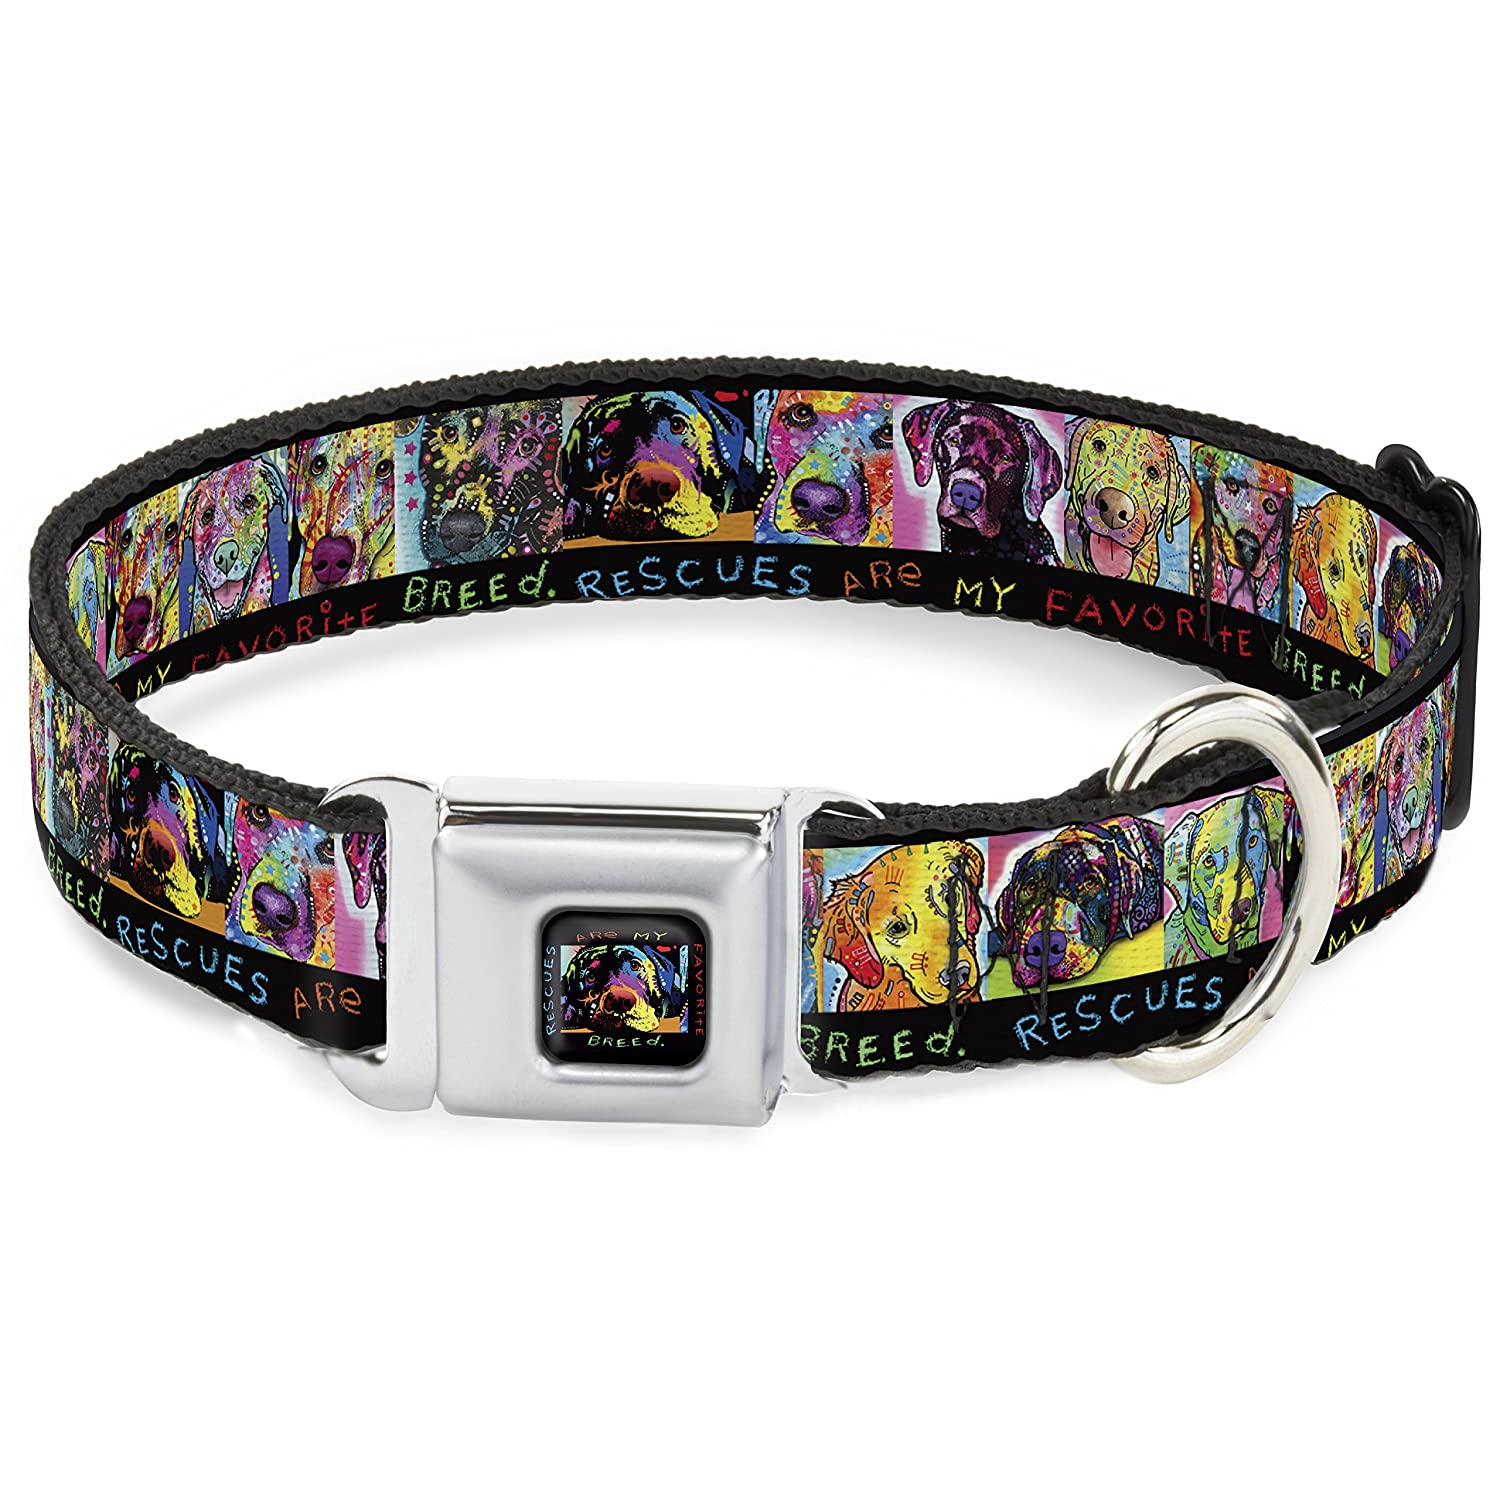 Buckle-Down Dc-Wal004-M ALB Portraits Rescues are My Favorite Breed Dog Collar, Medium, Black Multi color